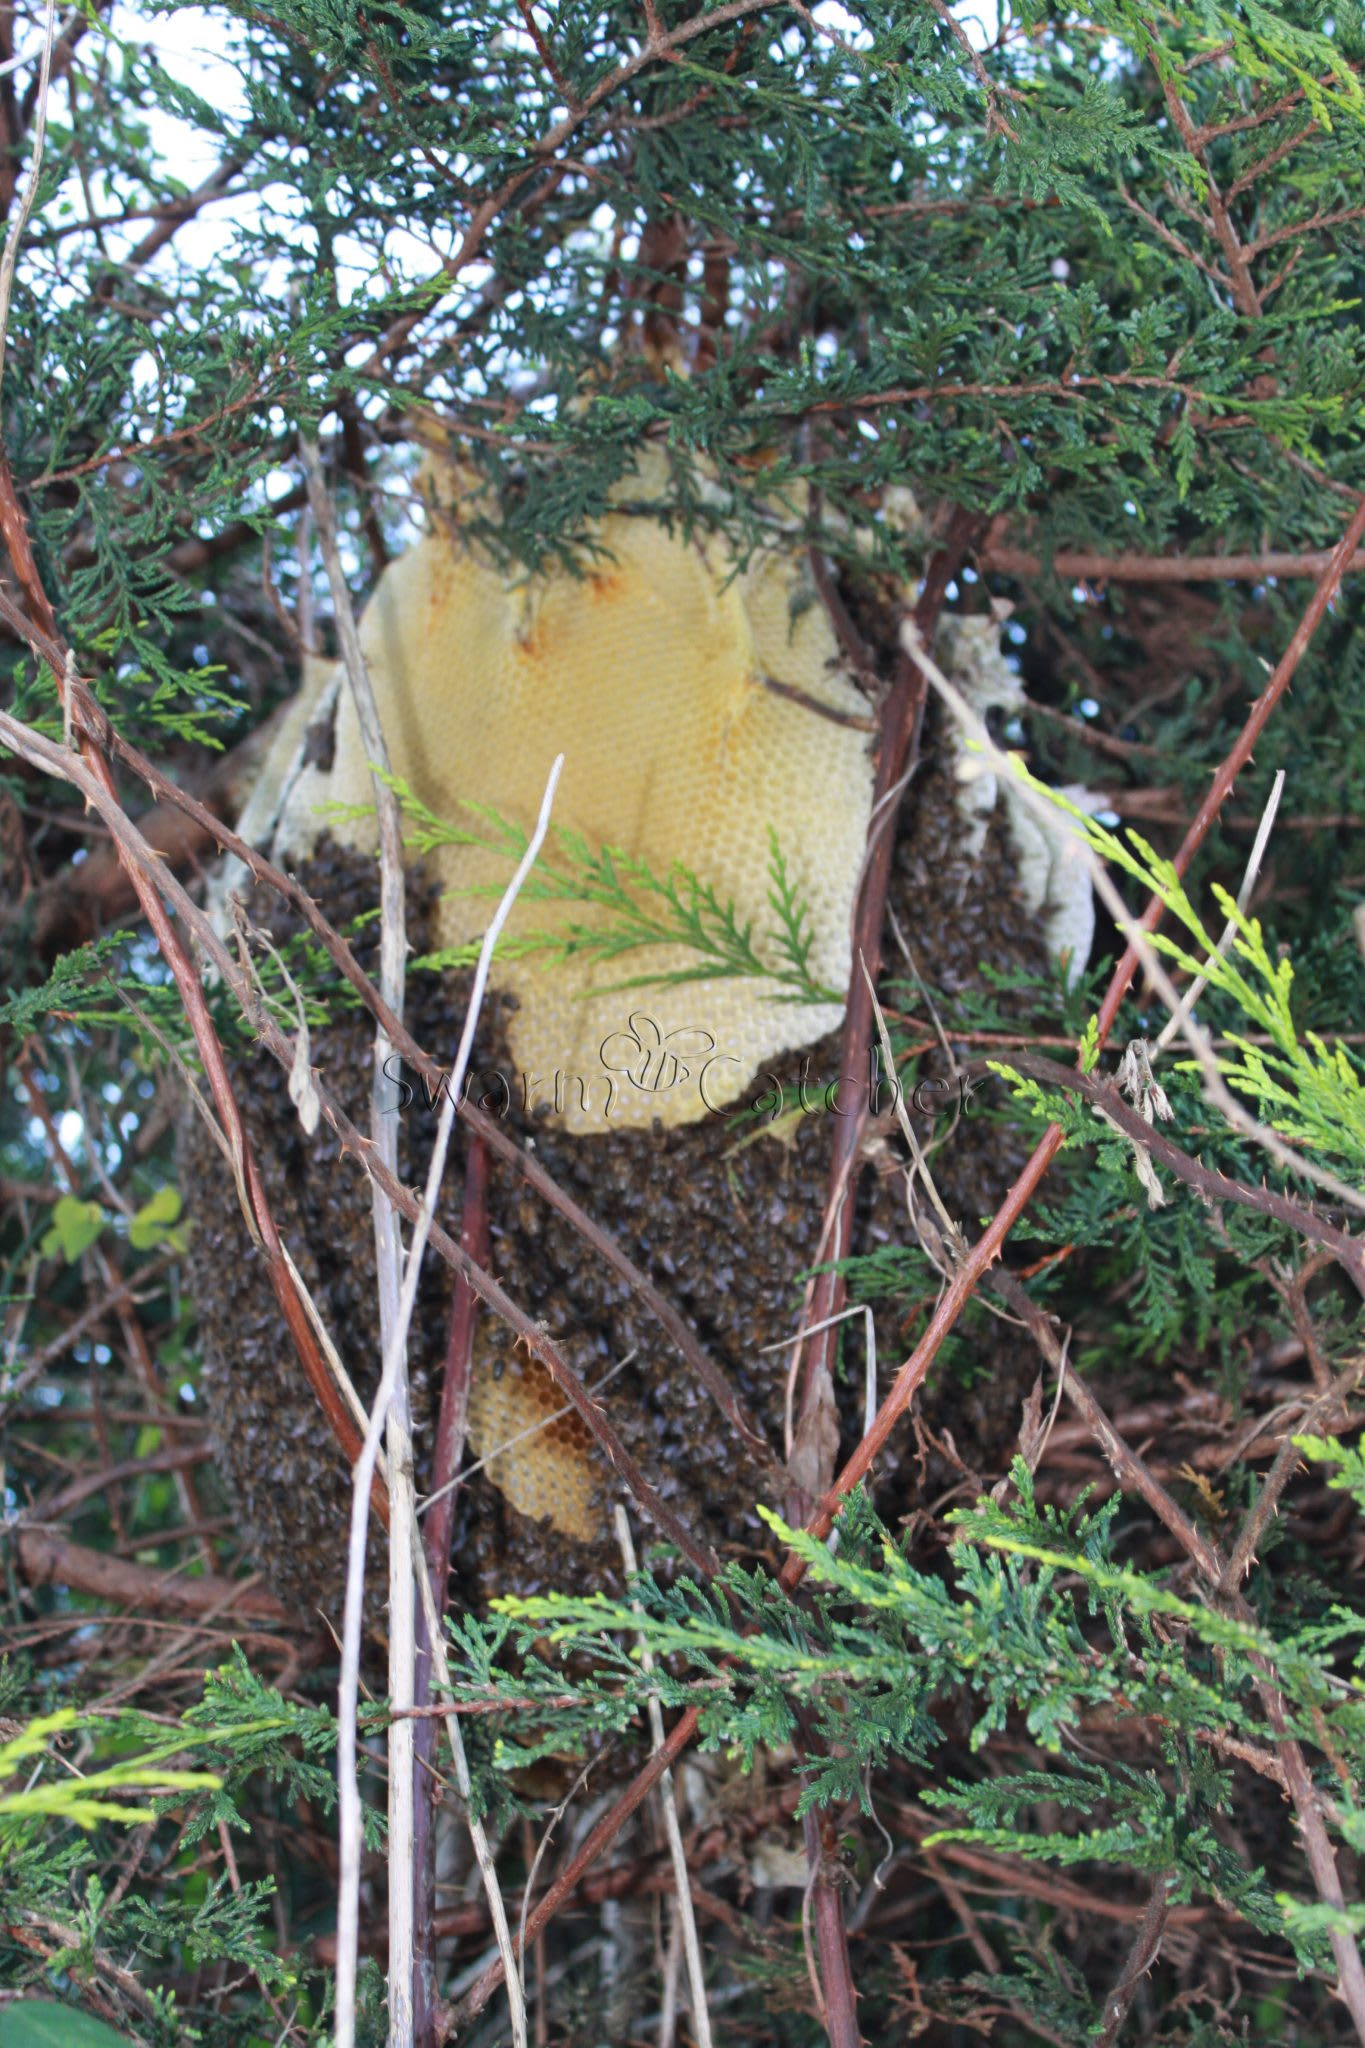 Wild Honey Bee Colony In A Tree In A South Wales Valley At